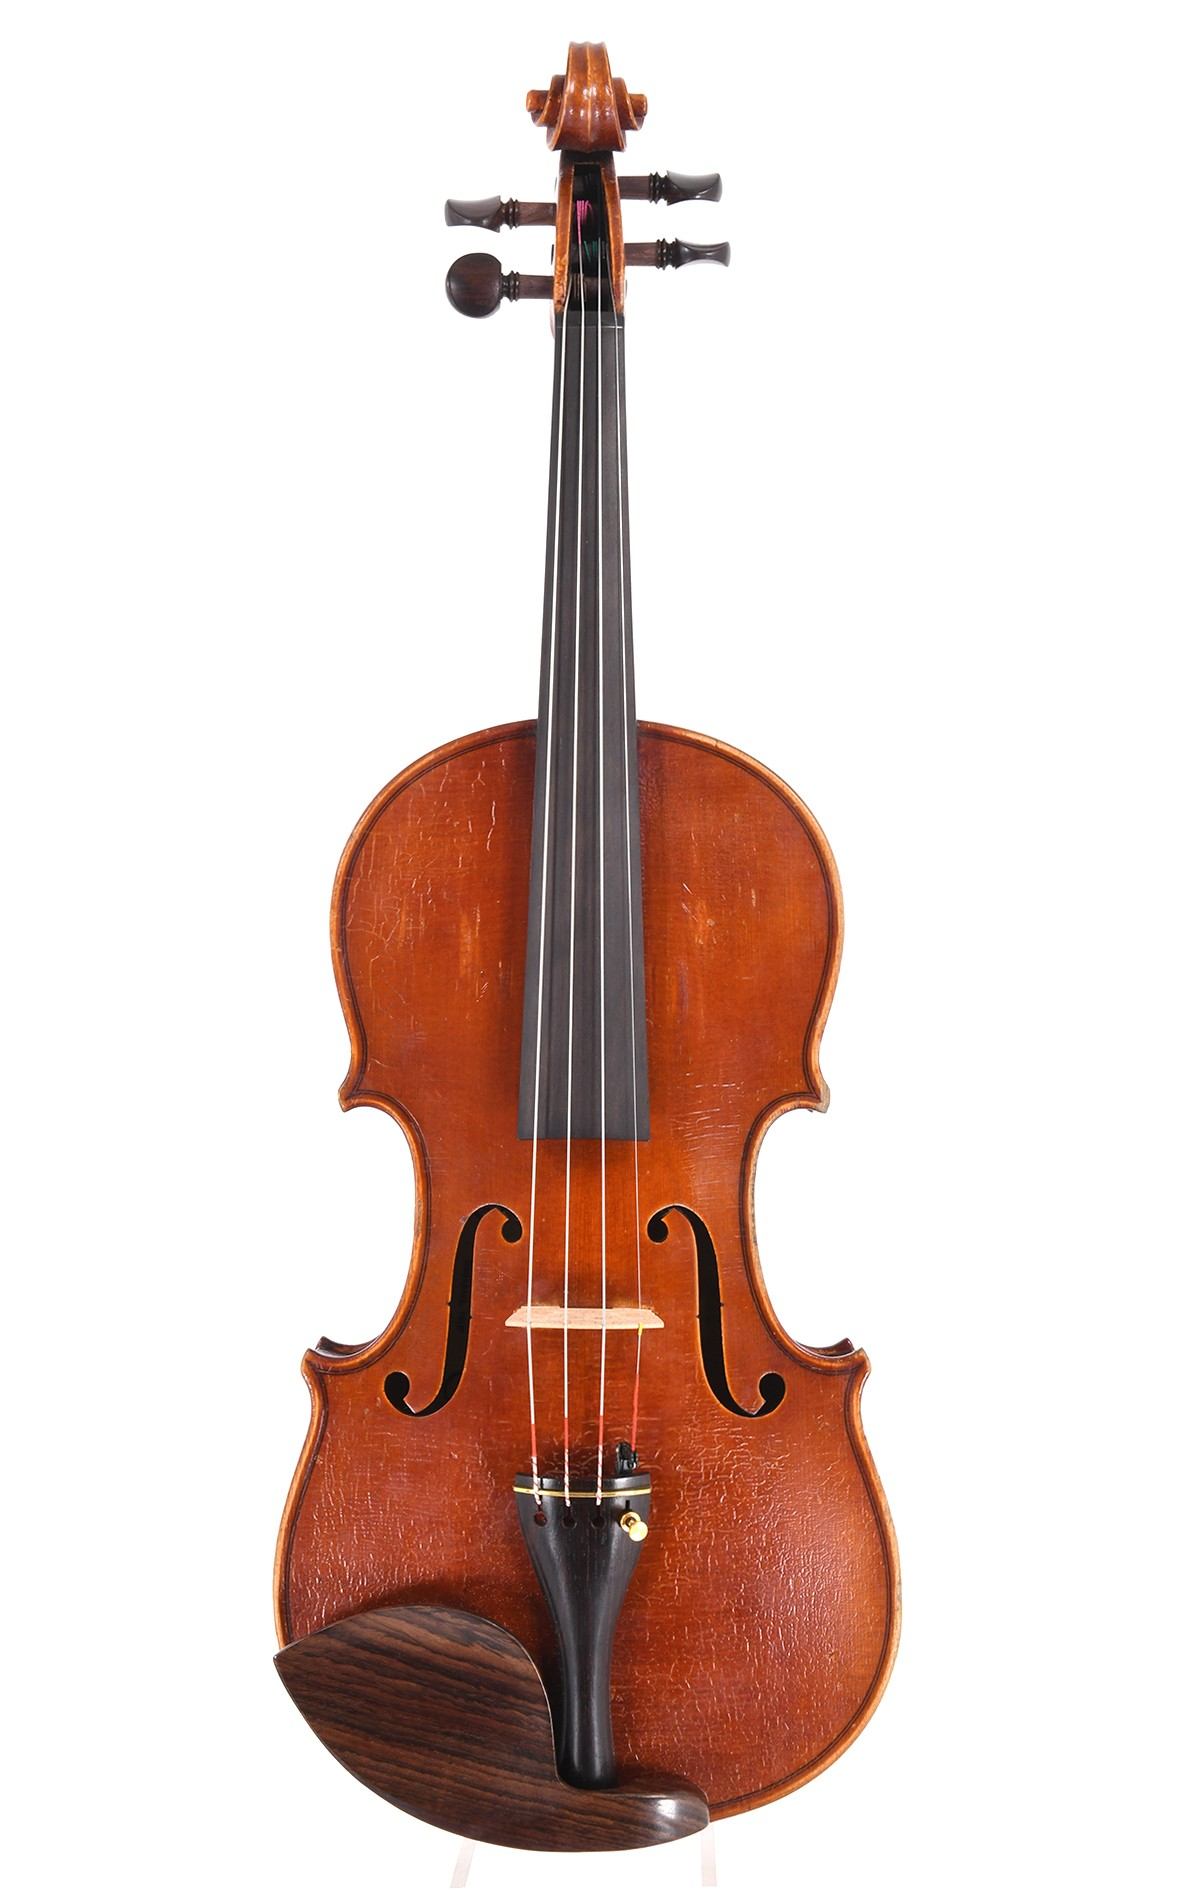 Hungarian master violin from the workshop of Janos Stowasser